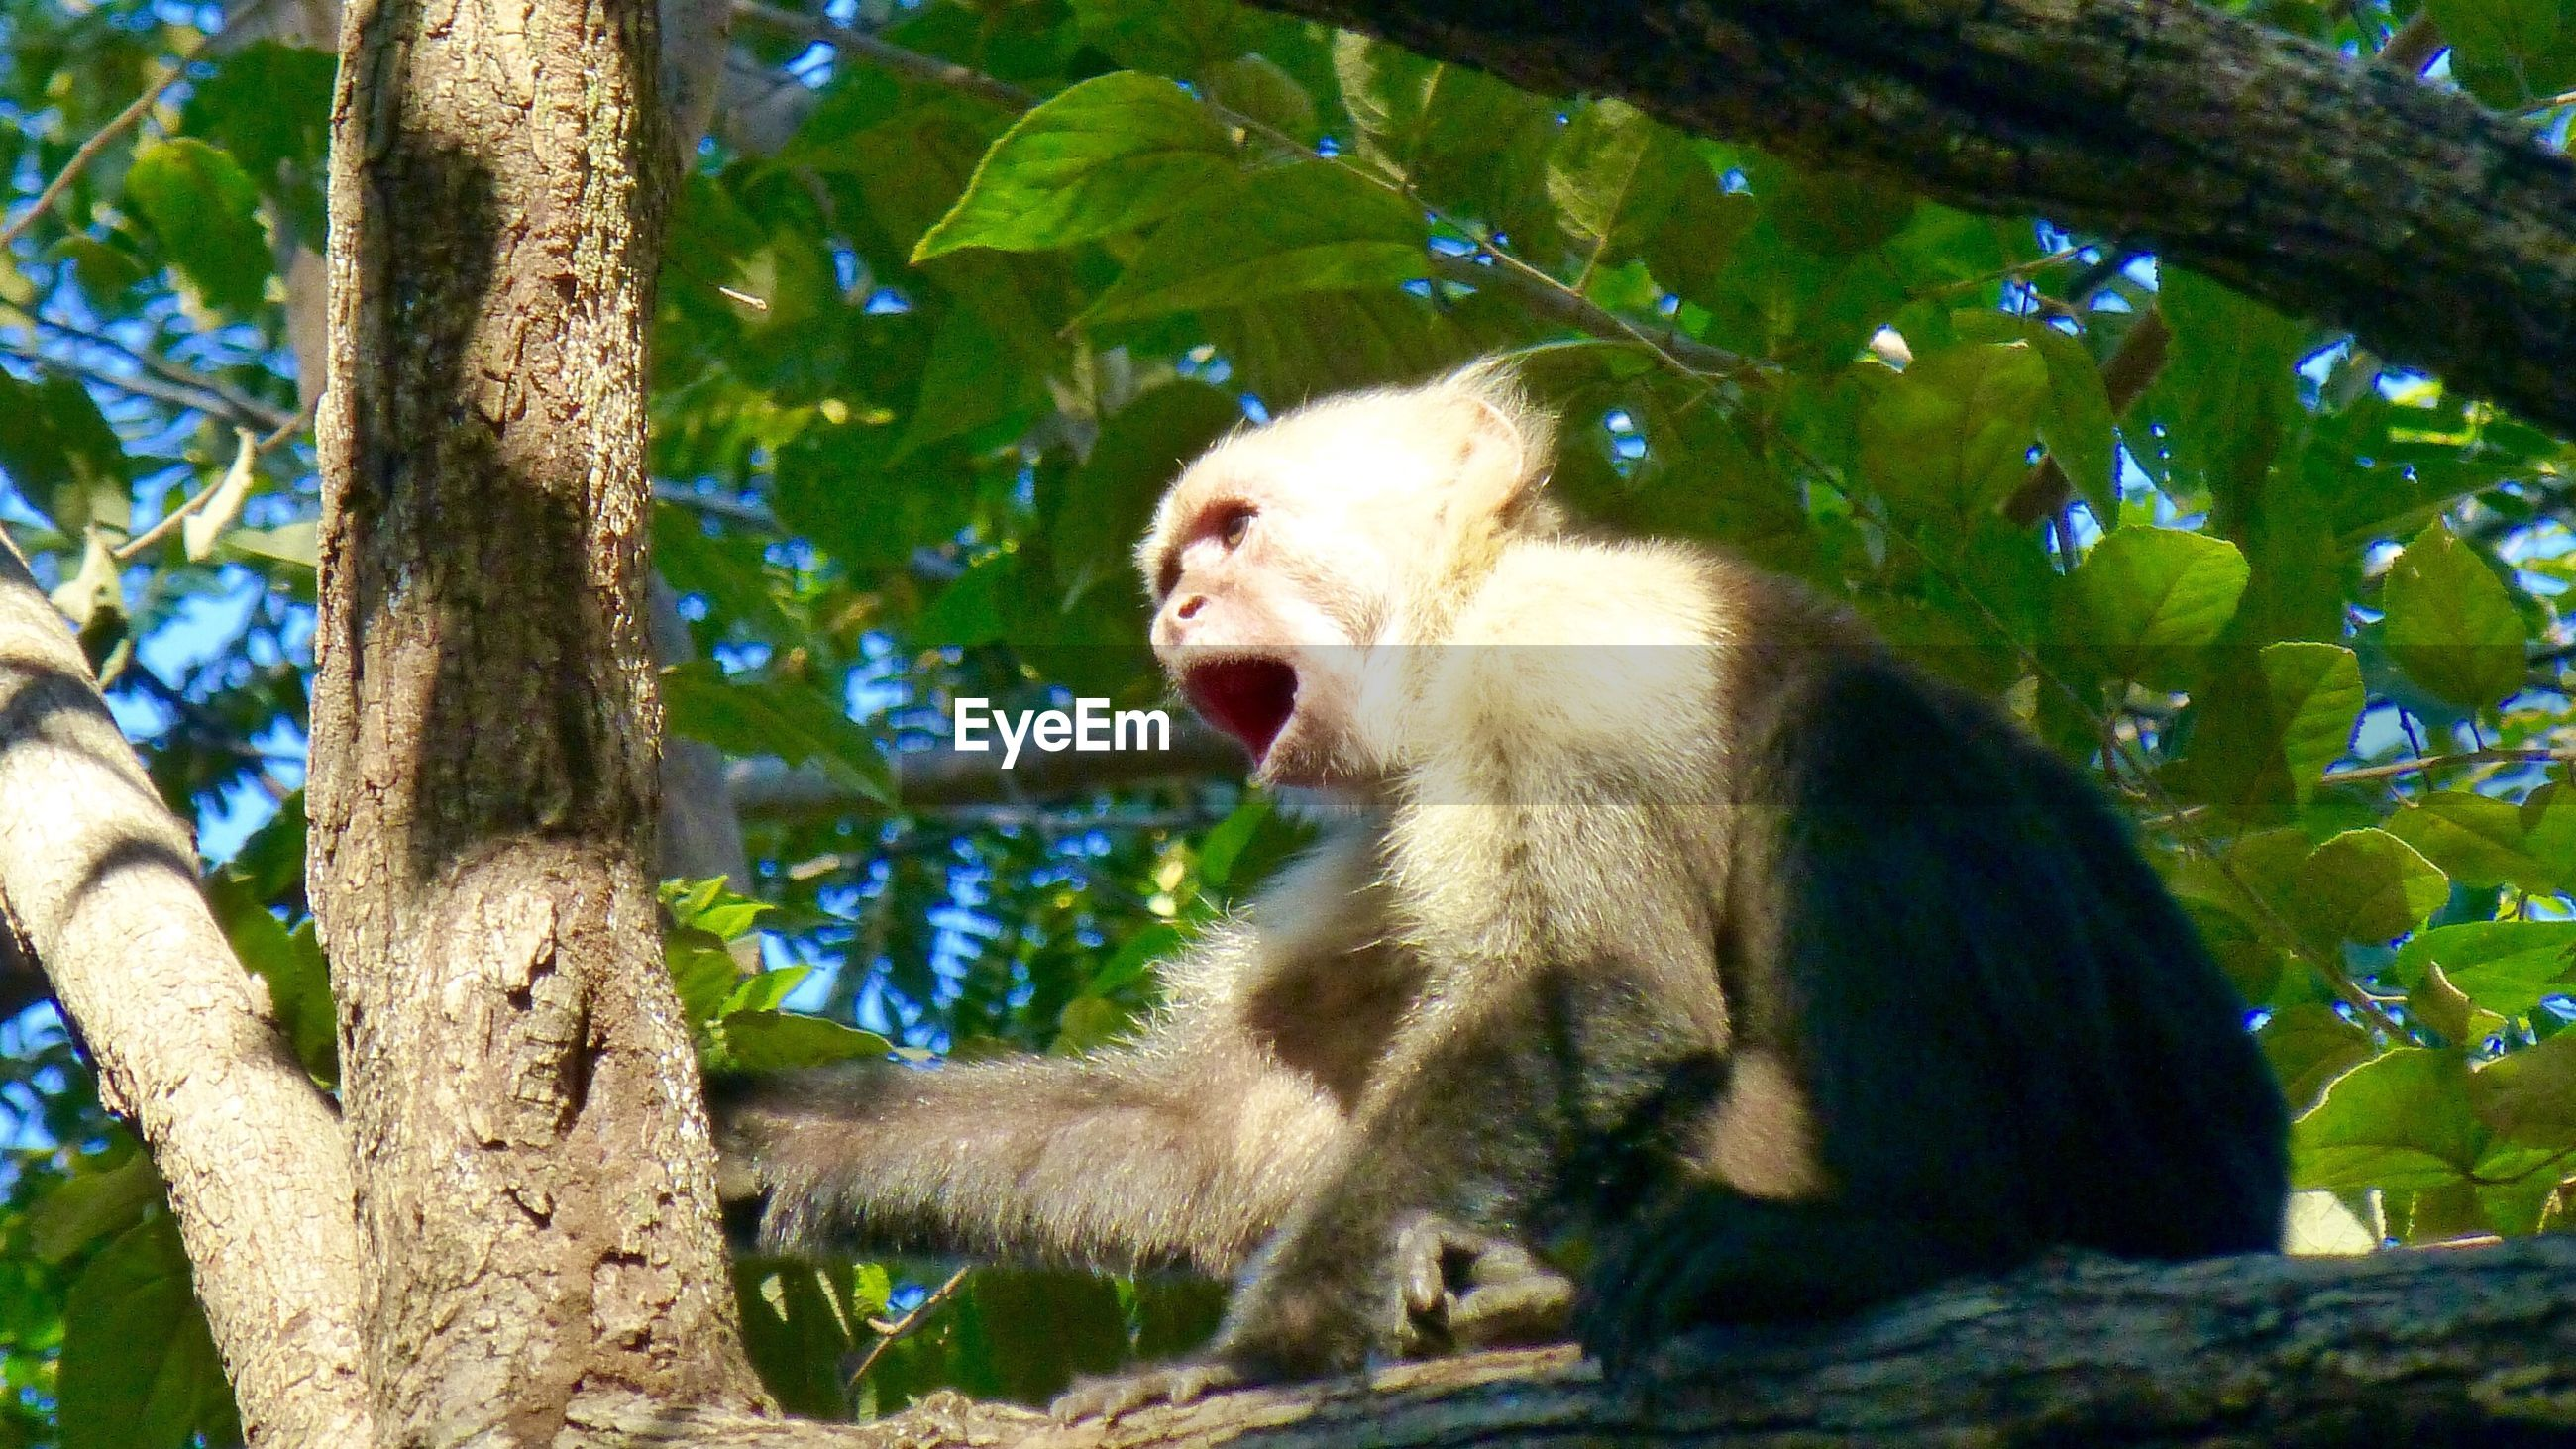 Shot of monkey perched on tree